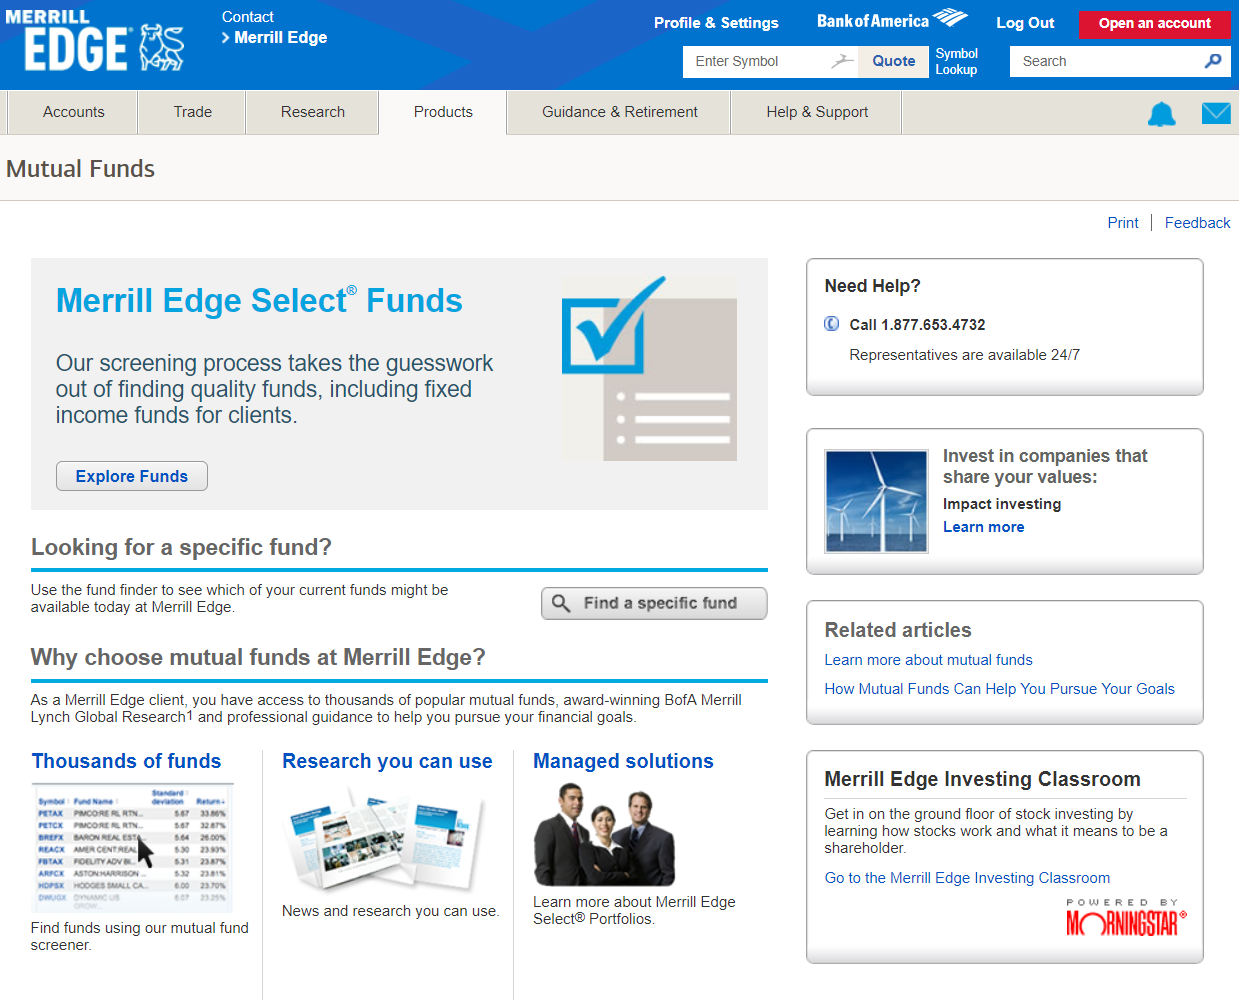 Merrill Edge Review: Mutual Funds